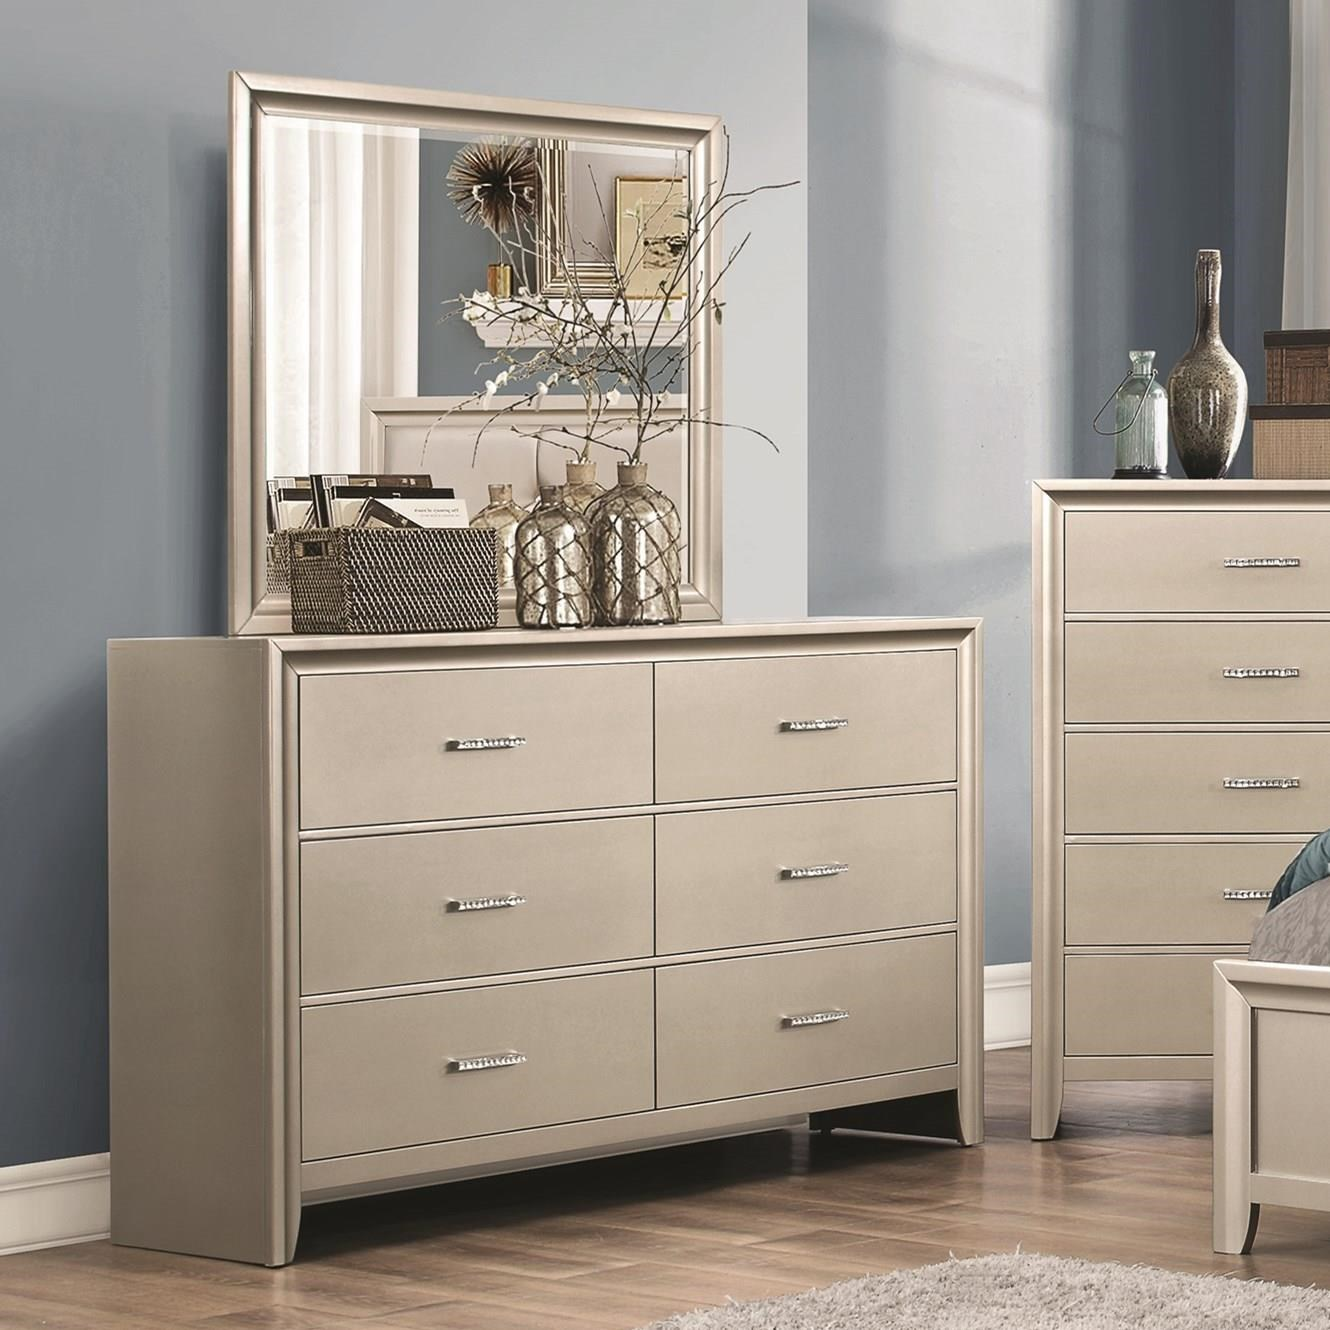 langley pdp double street drawer furniture sunset dresser